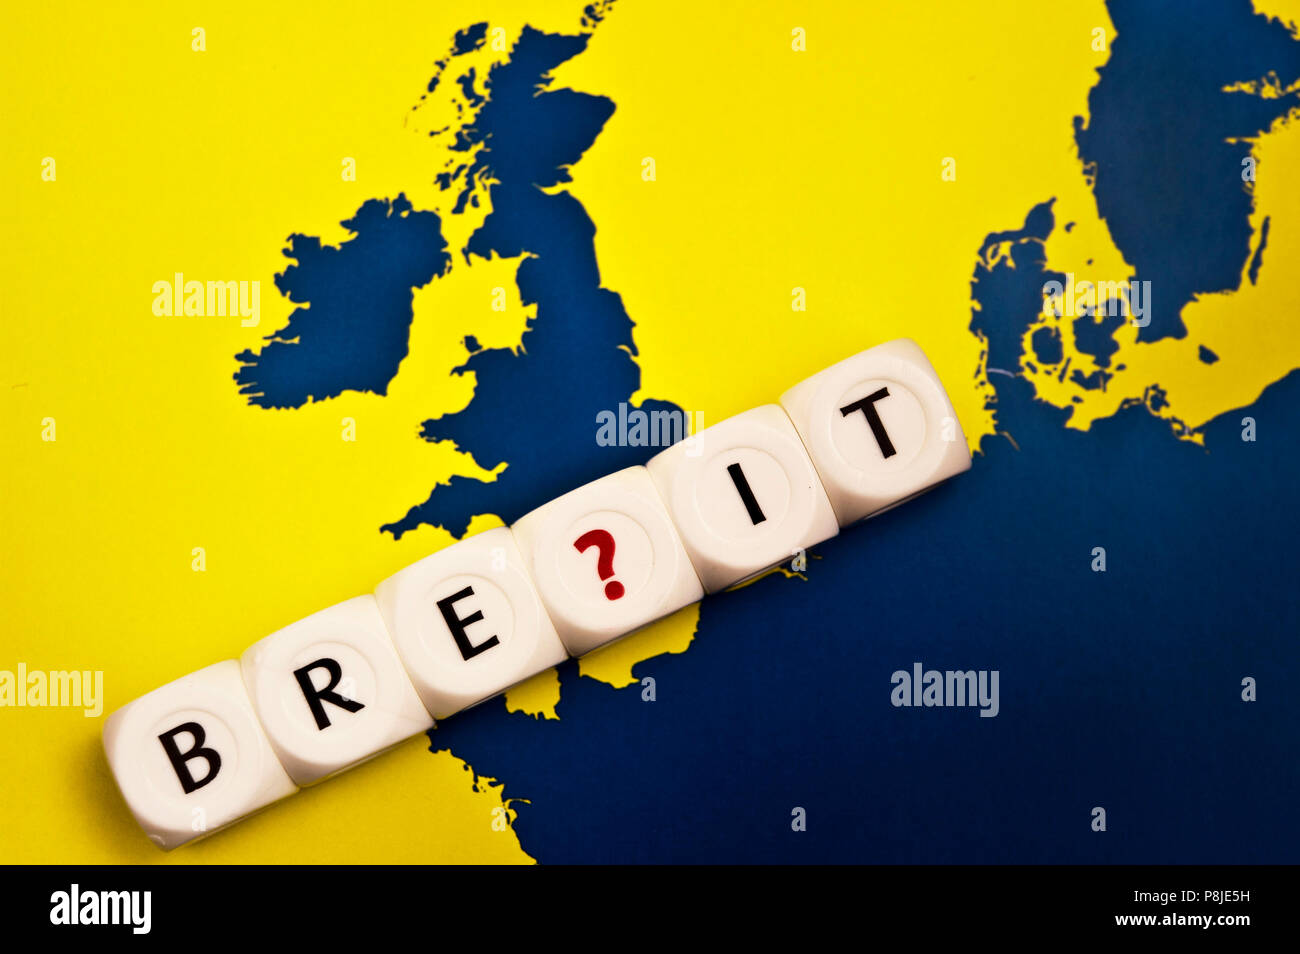 conceptual image for growing doubts about UK leaving Europe union or Brexit - Stock Image